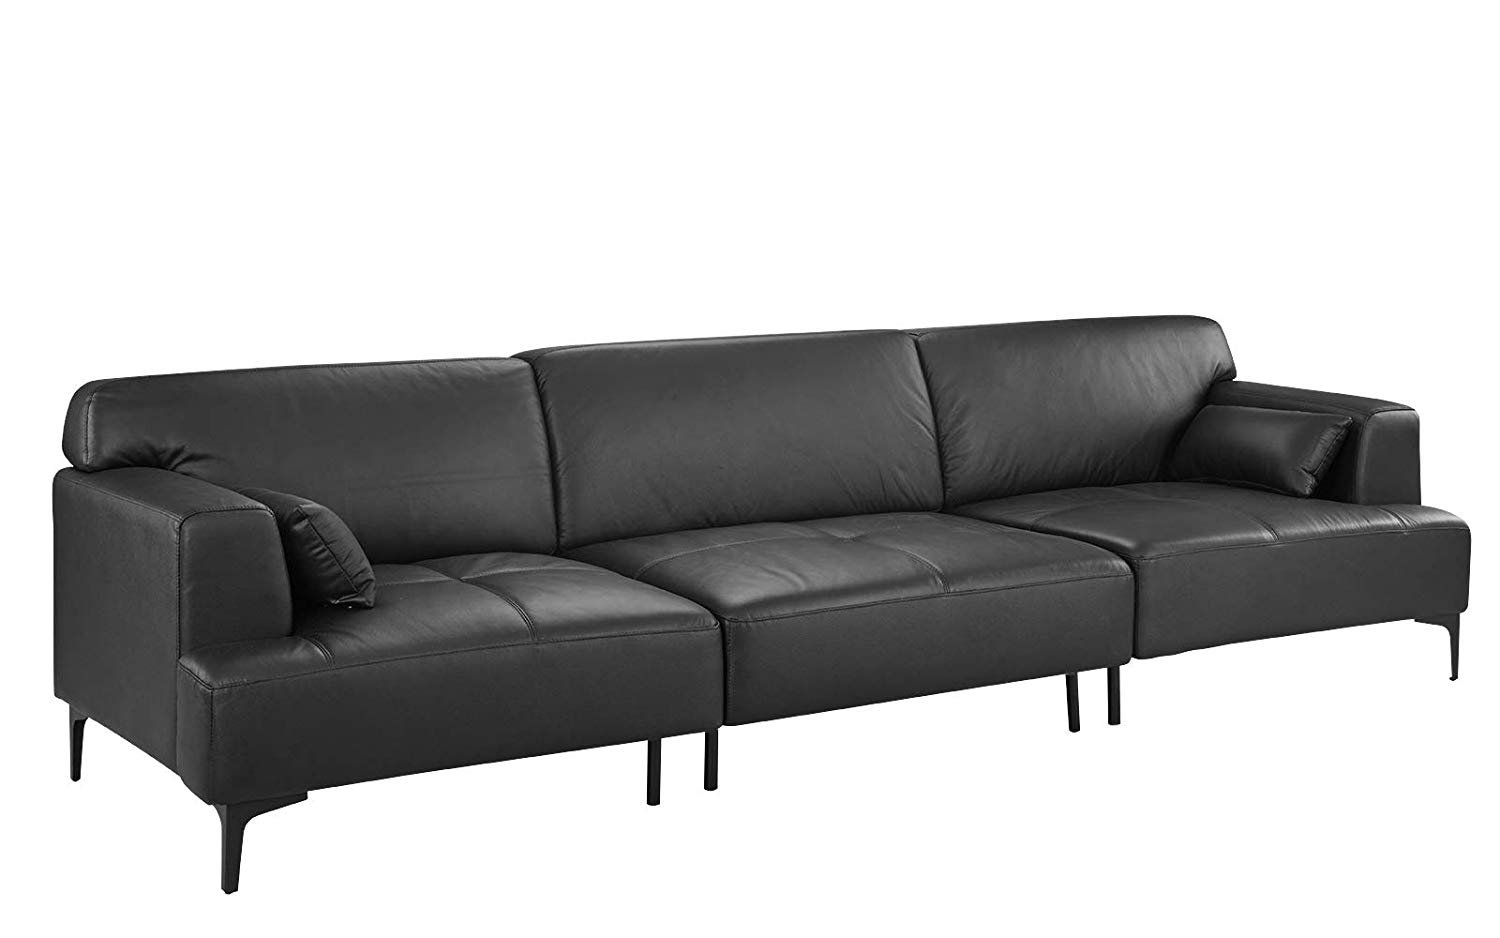 Details About Extra Large Living Room Sofa/Couch In Leather, Wood Frame, 2  Pillows, Dark Grey